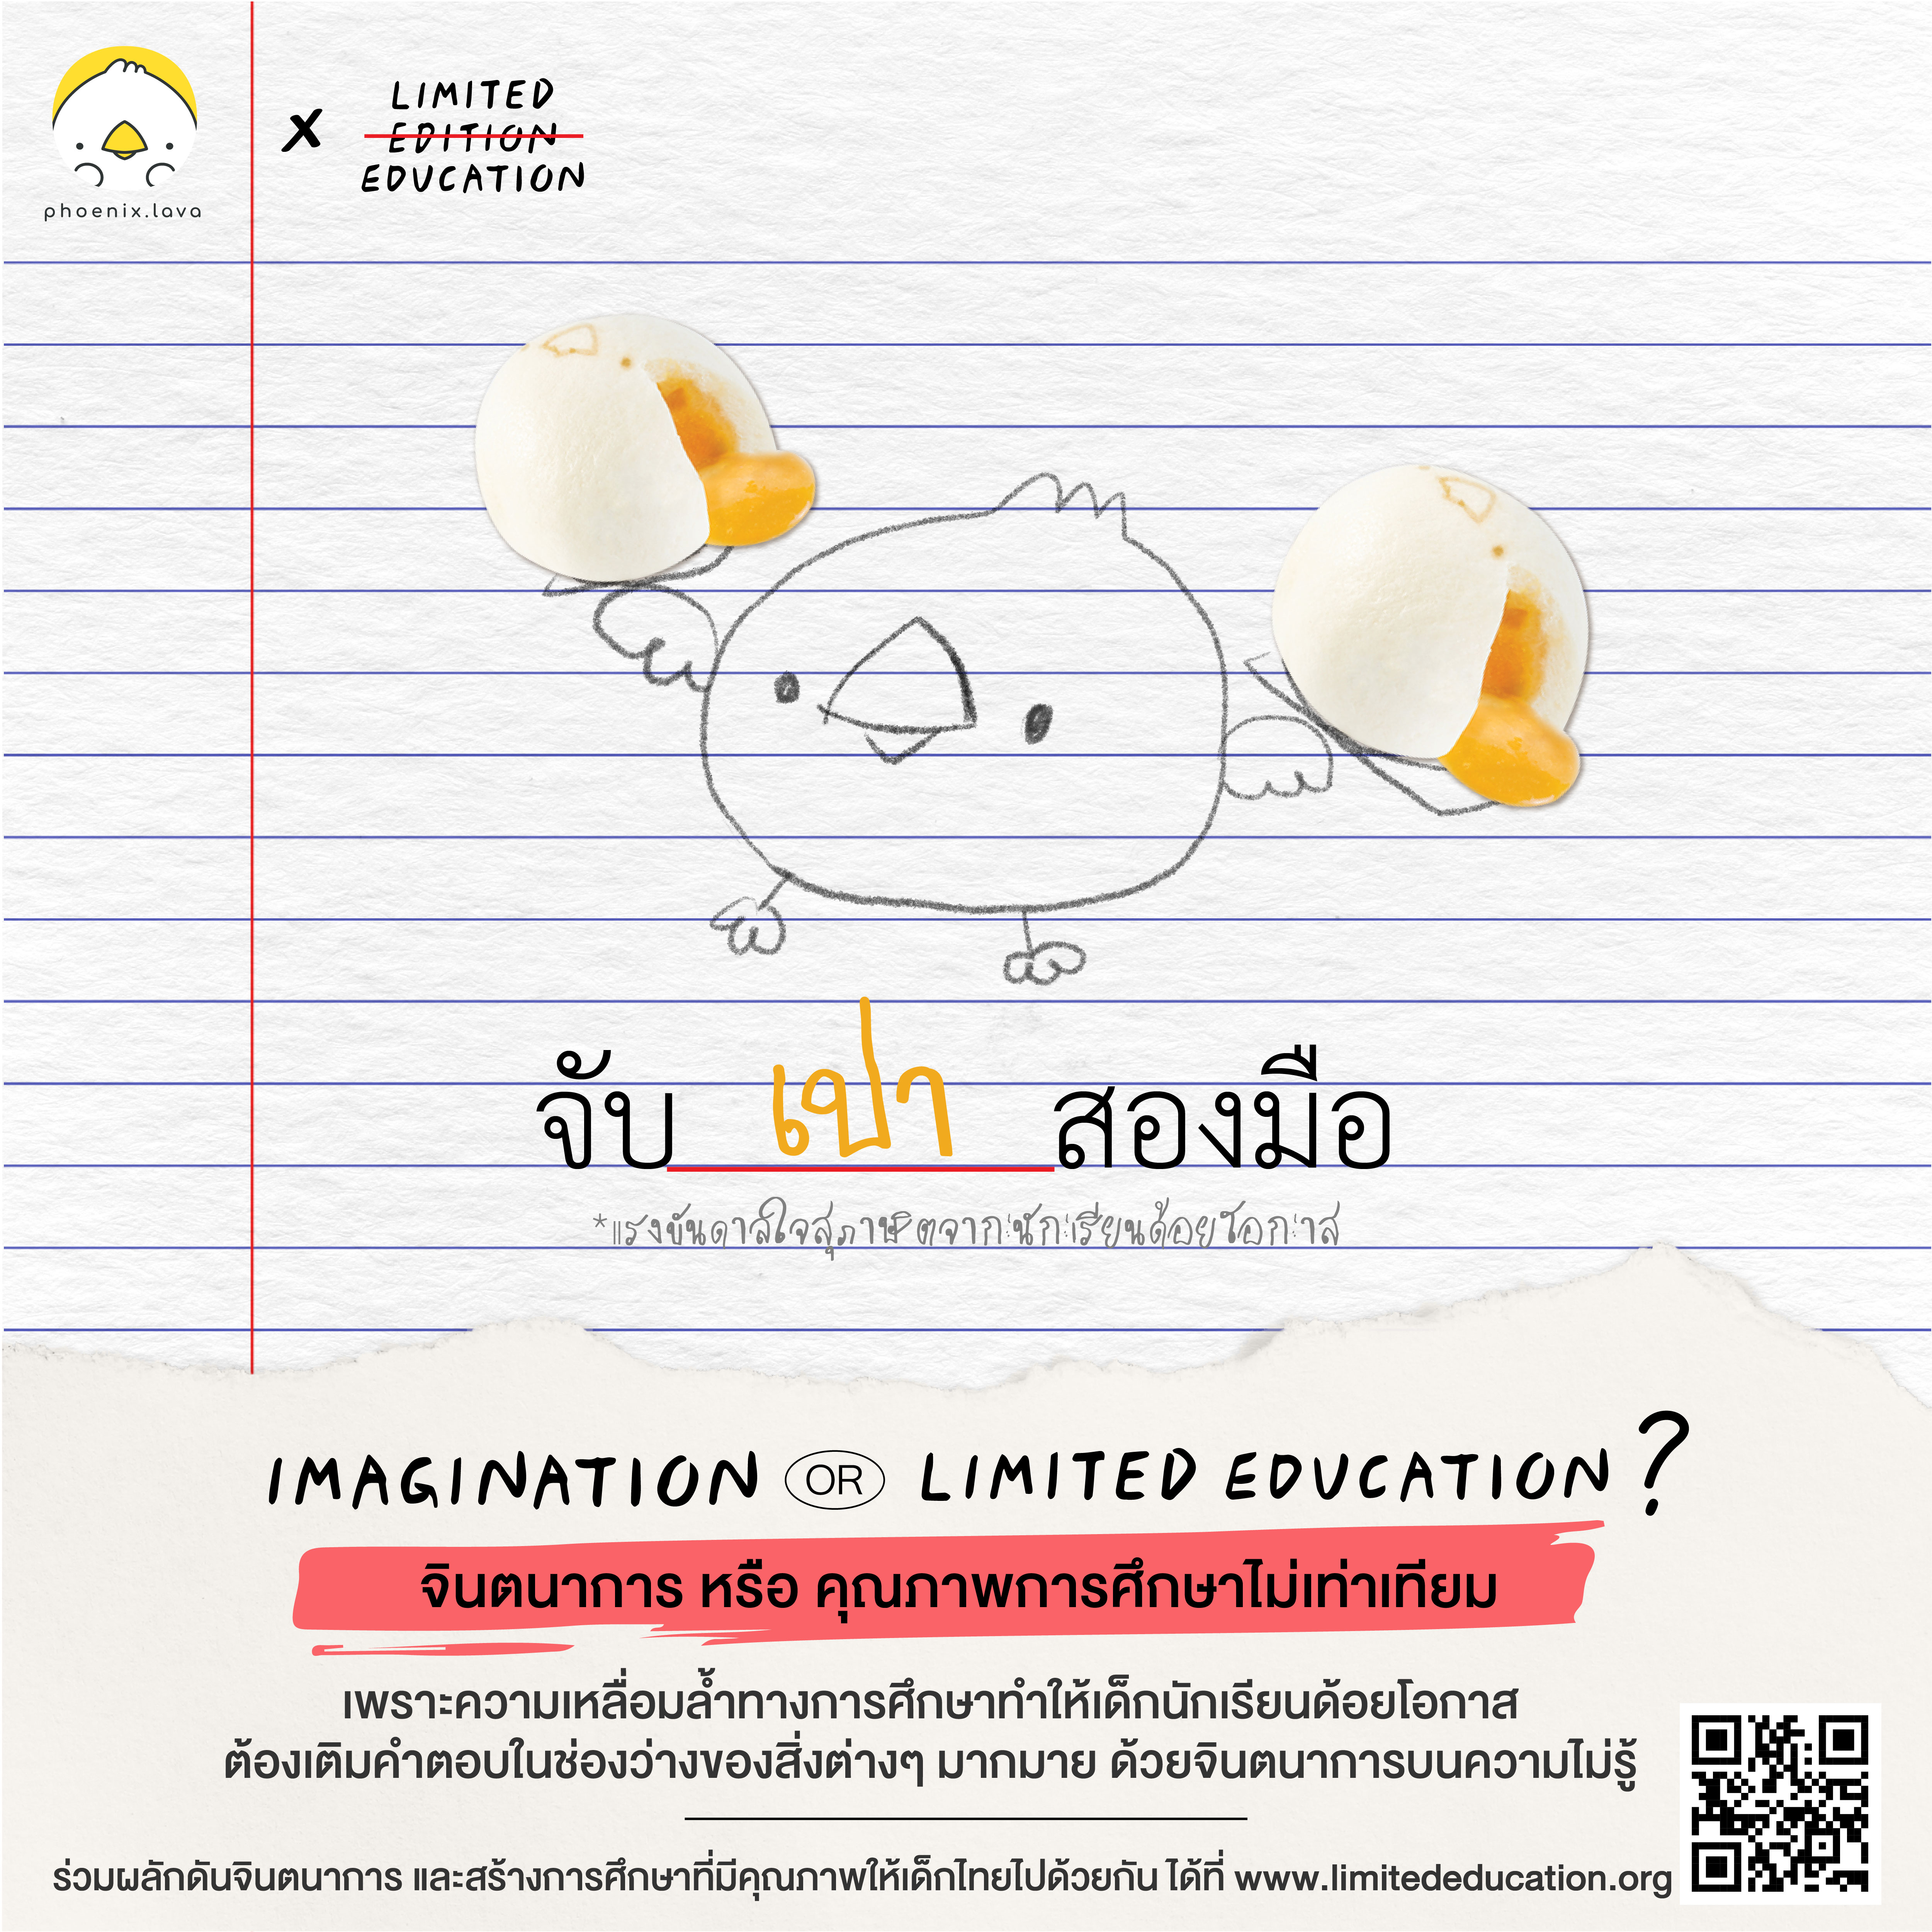 Imagination or Limited Education